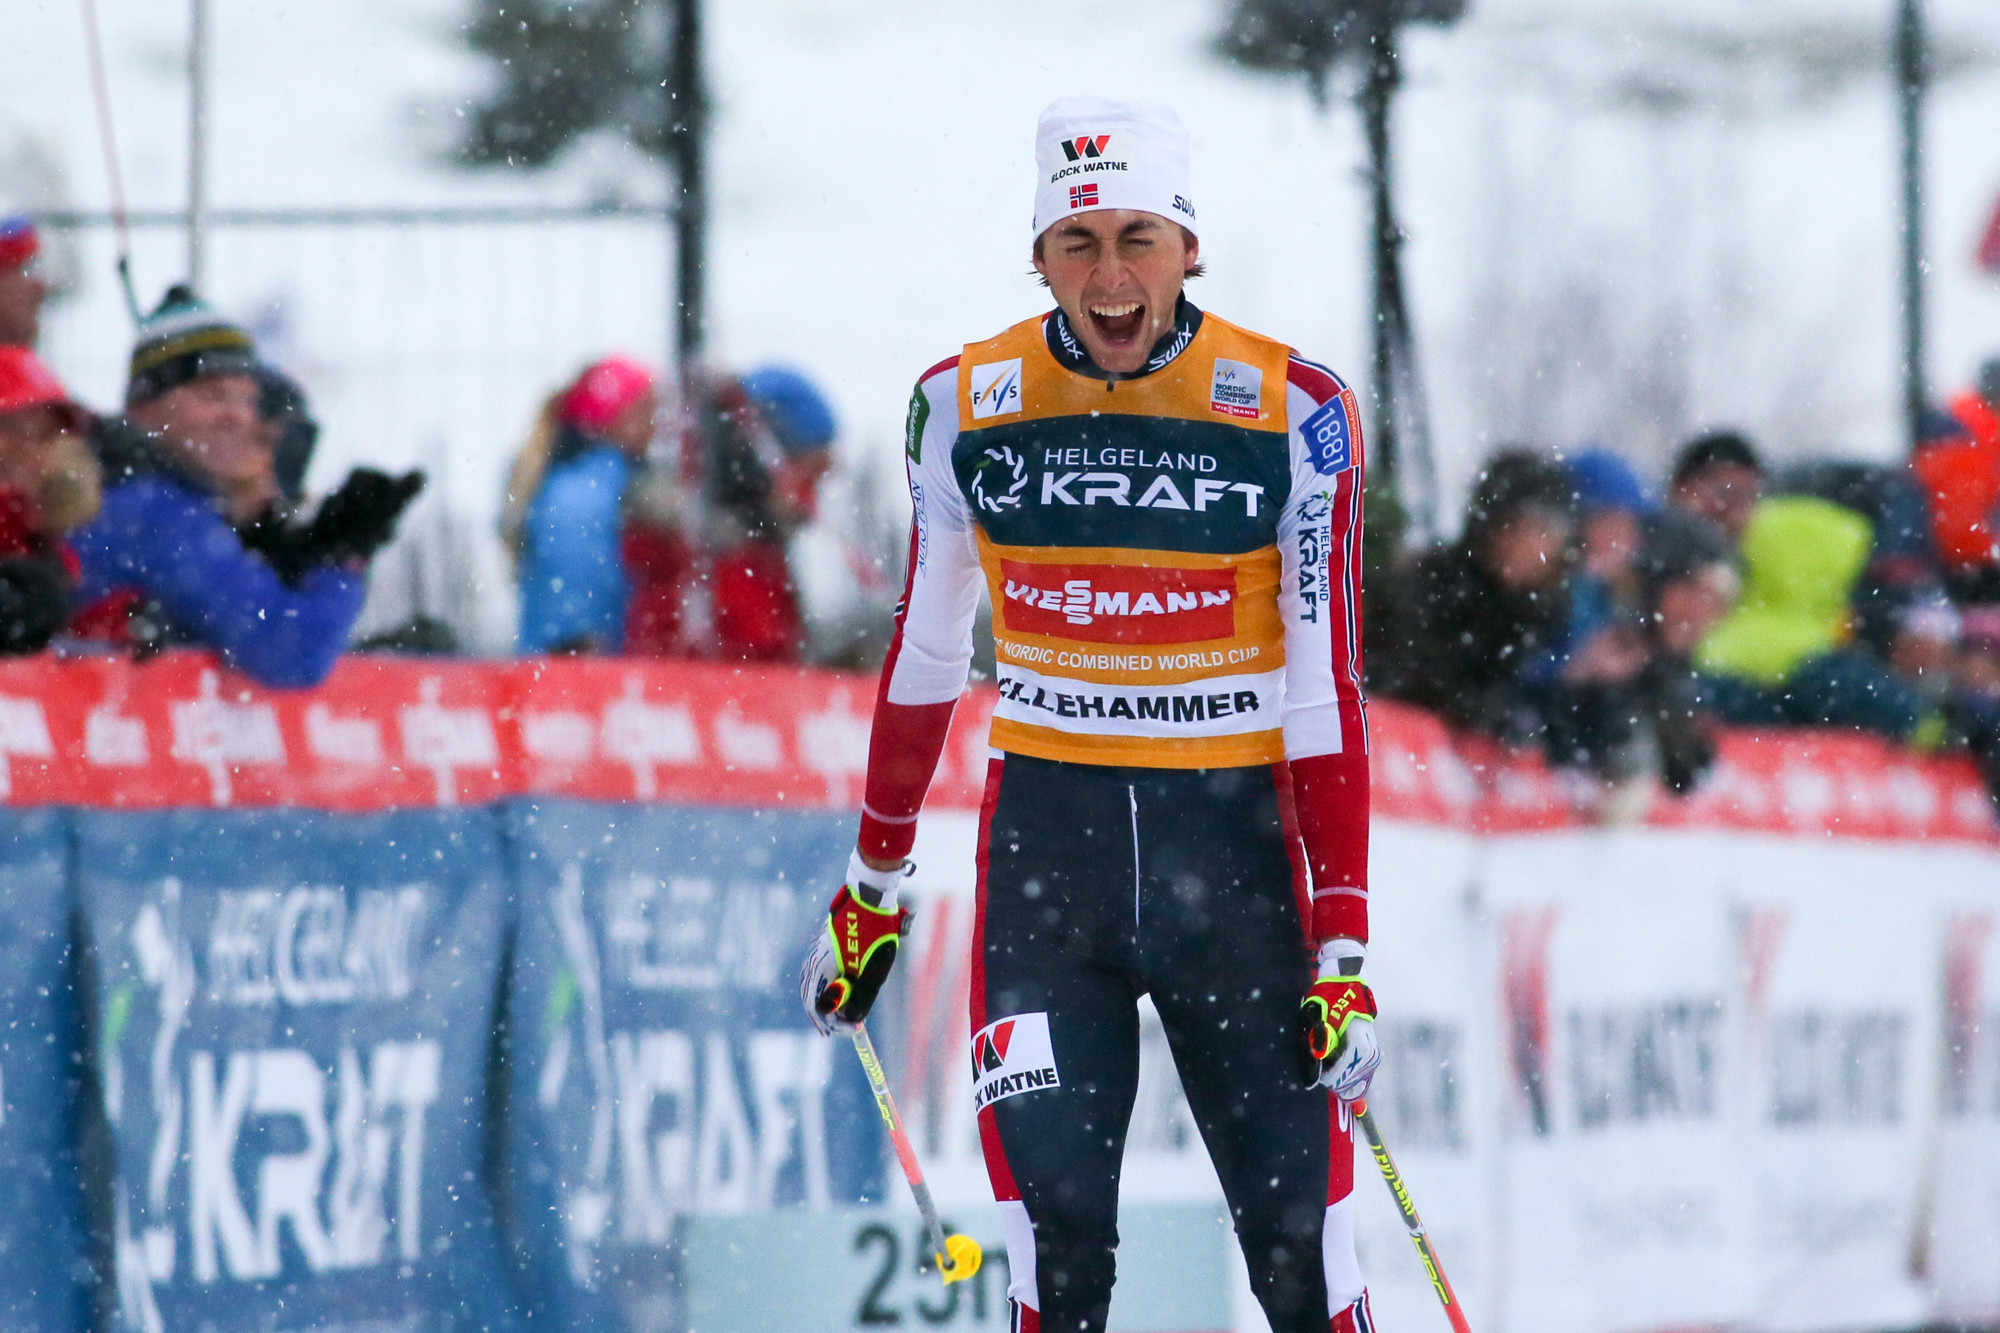 Big weekend for Norwegians as FIS Nordic Combined World Cup arrives in Trondheim